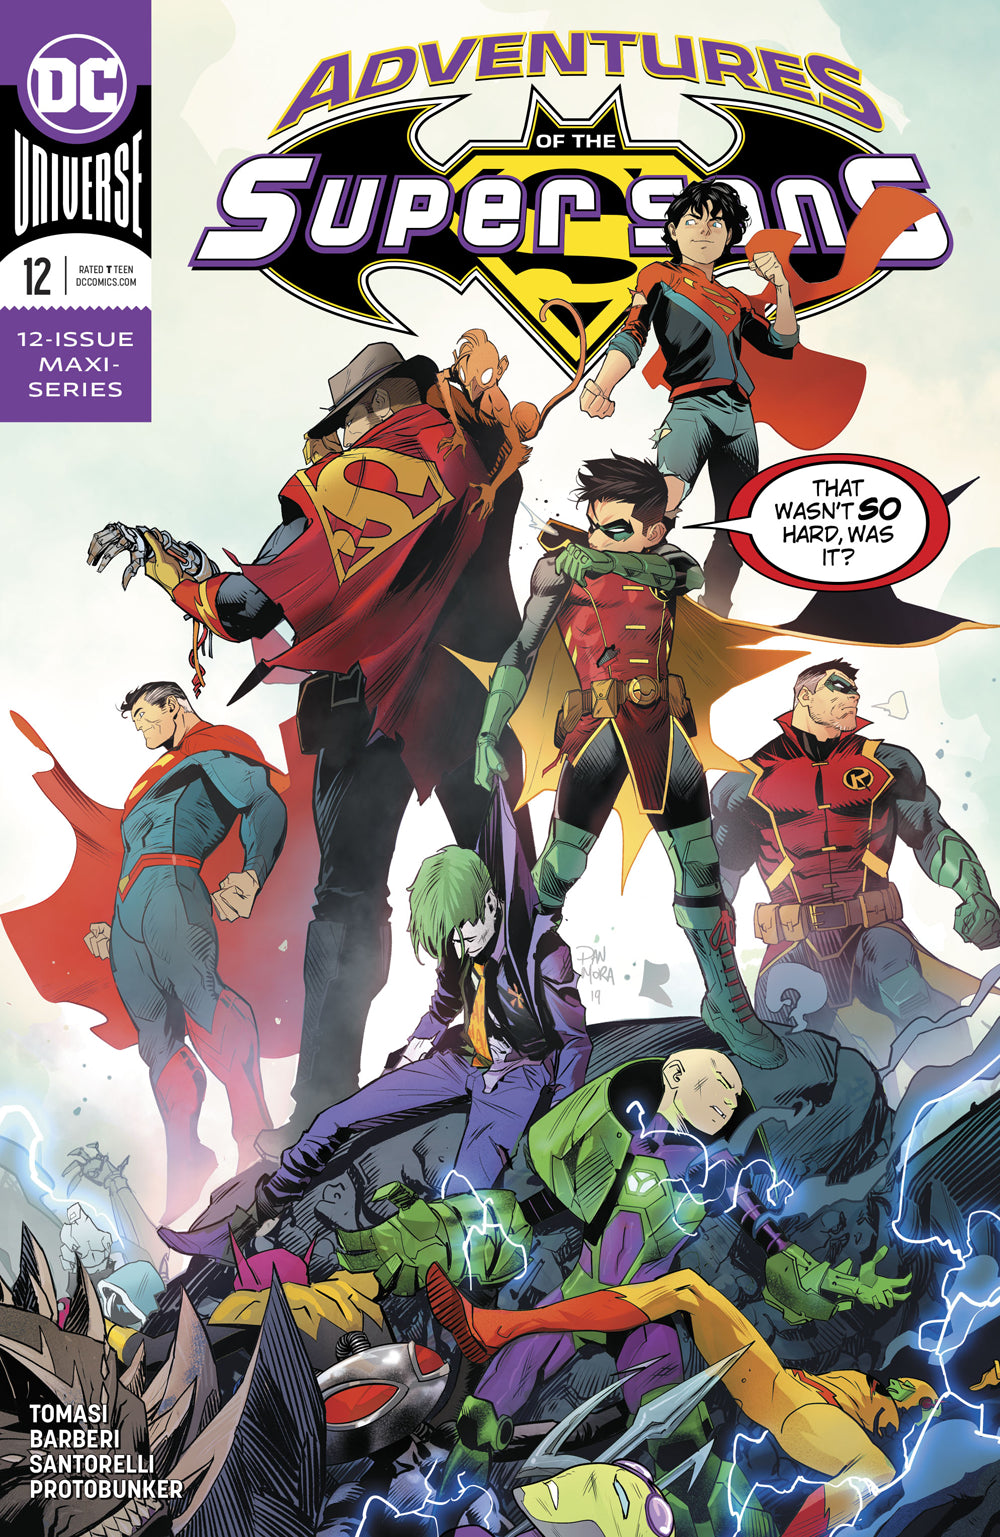 ADVENTURES OF THE SUPER SONS #12 (OF 12)